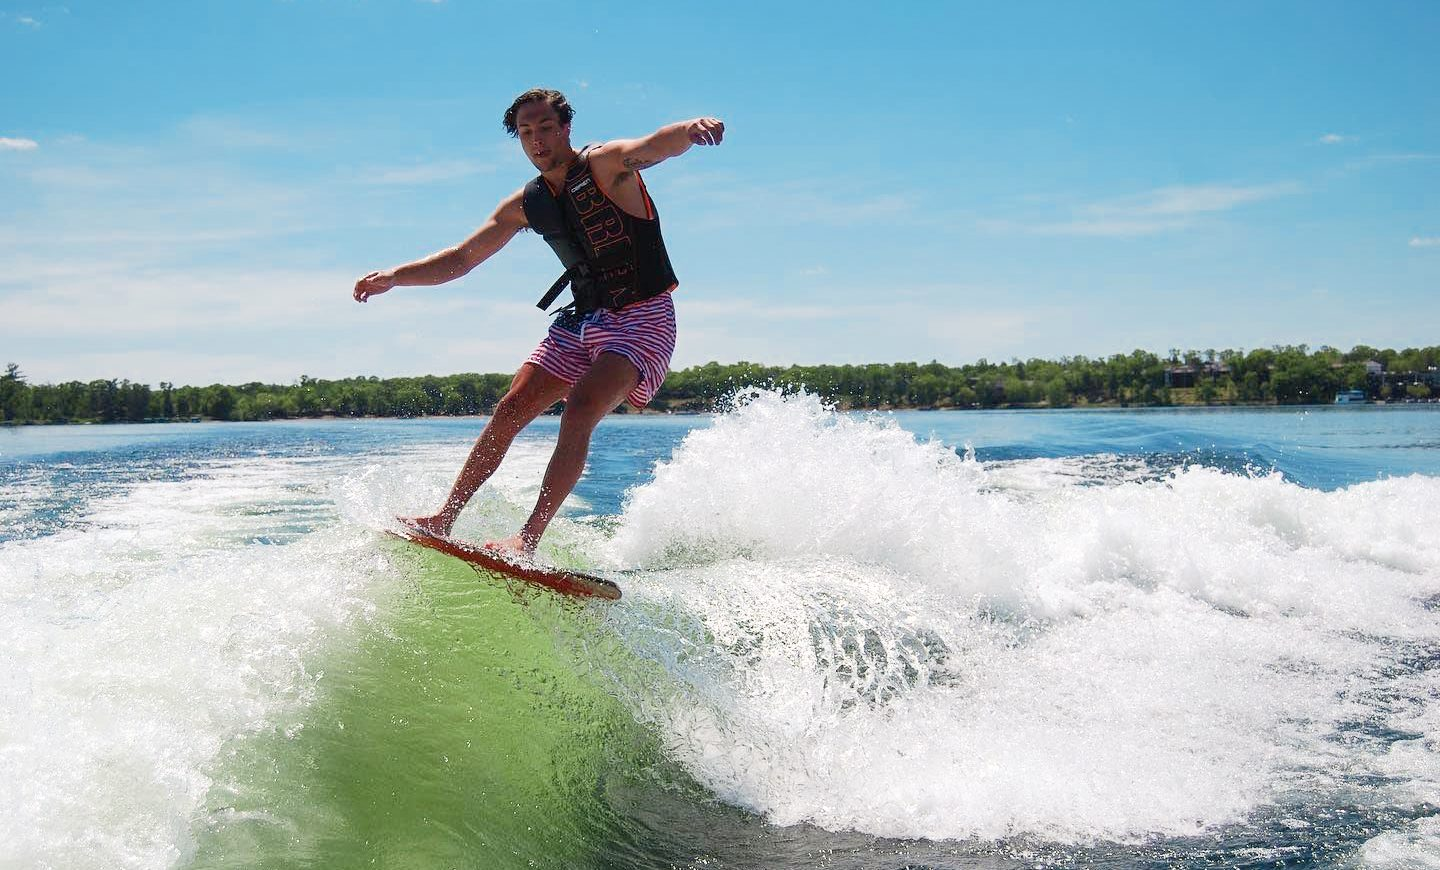 a person wake surfing